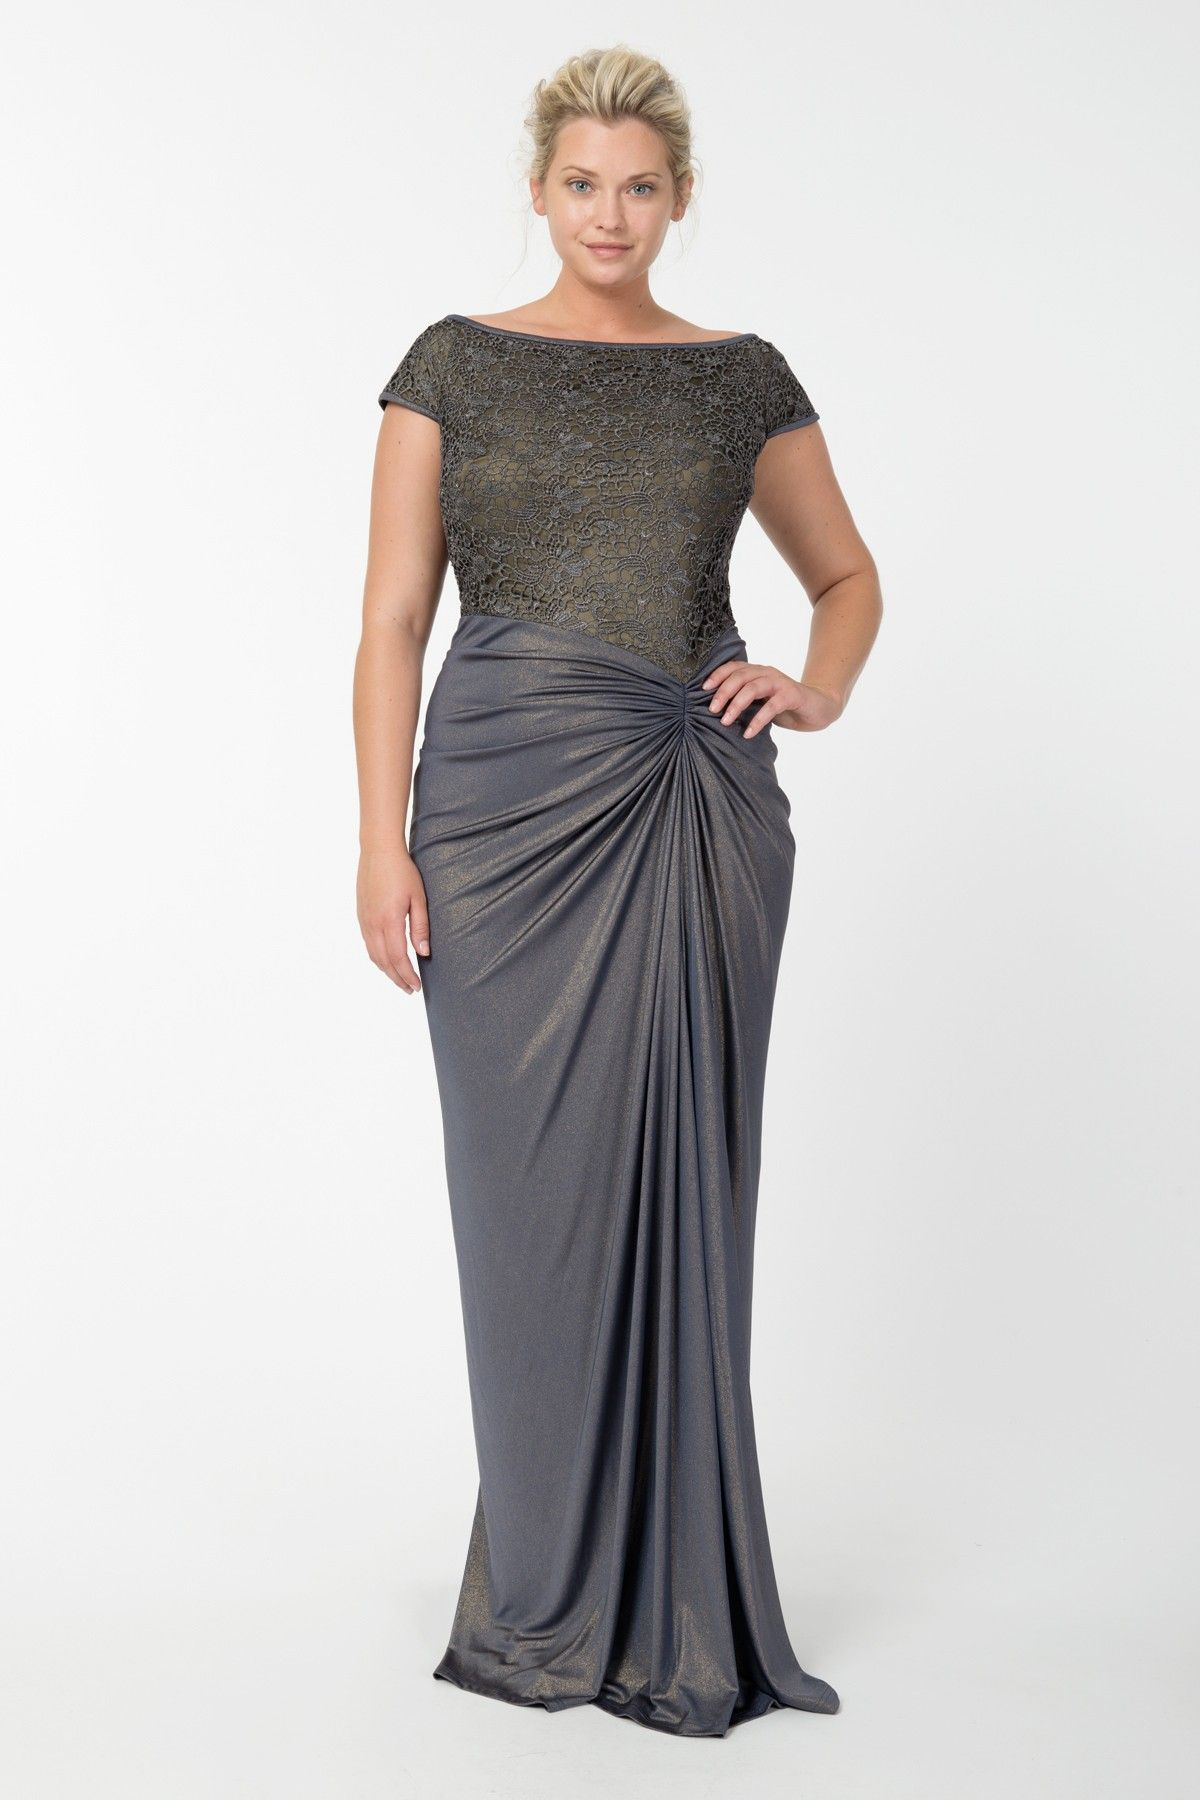 d63e86e7ce566 20 Plus Size Evening Dresses to Look Like Queen